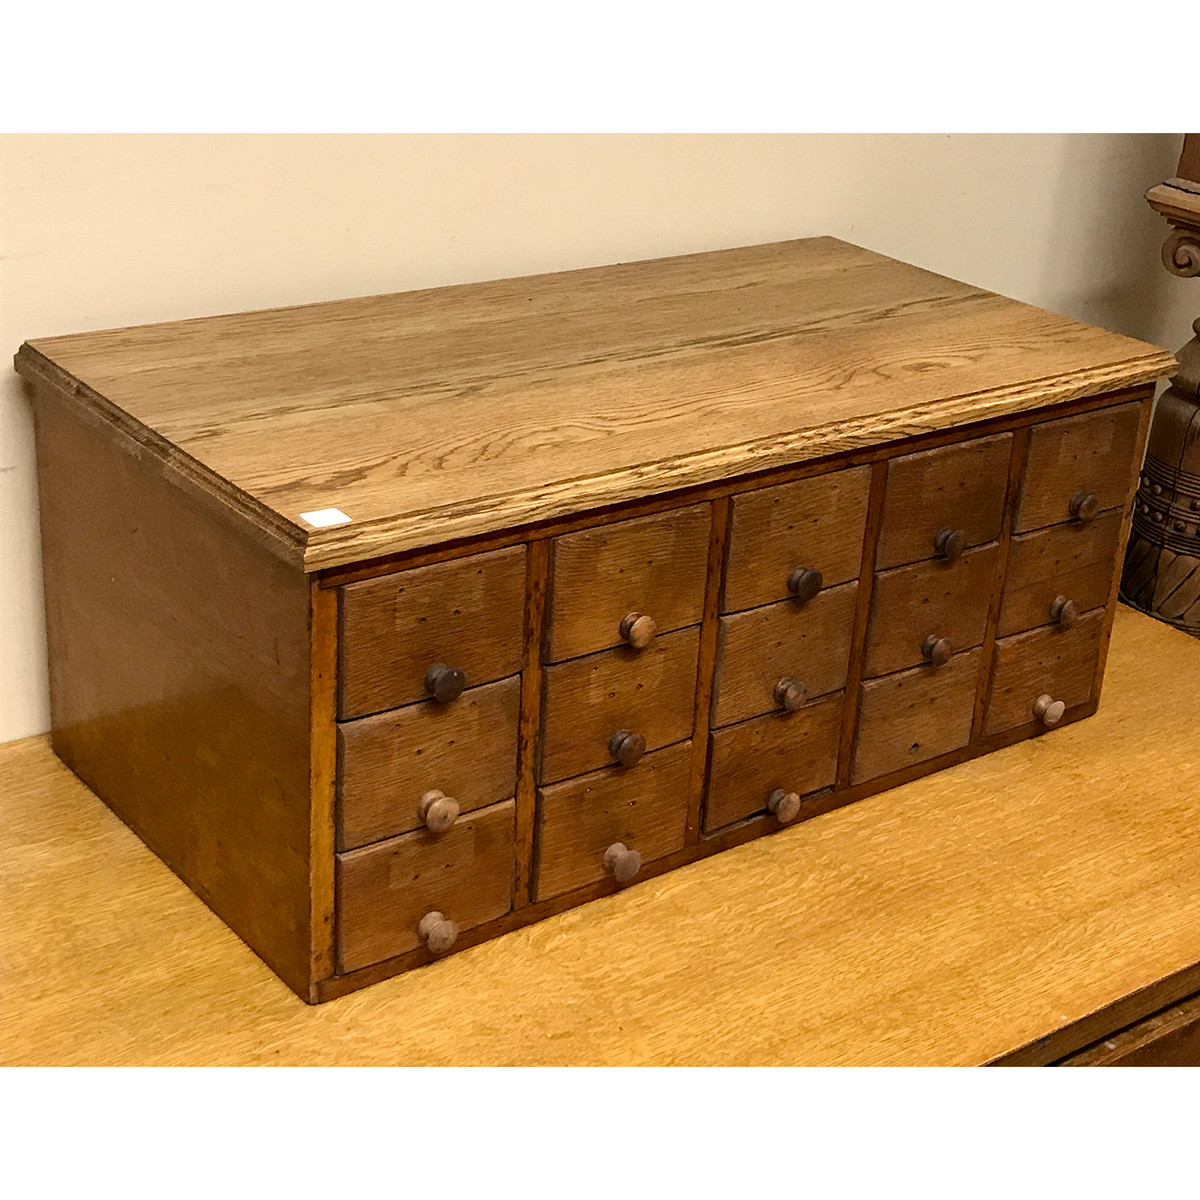 F19193 - Antique Cabinet